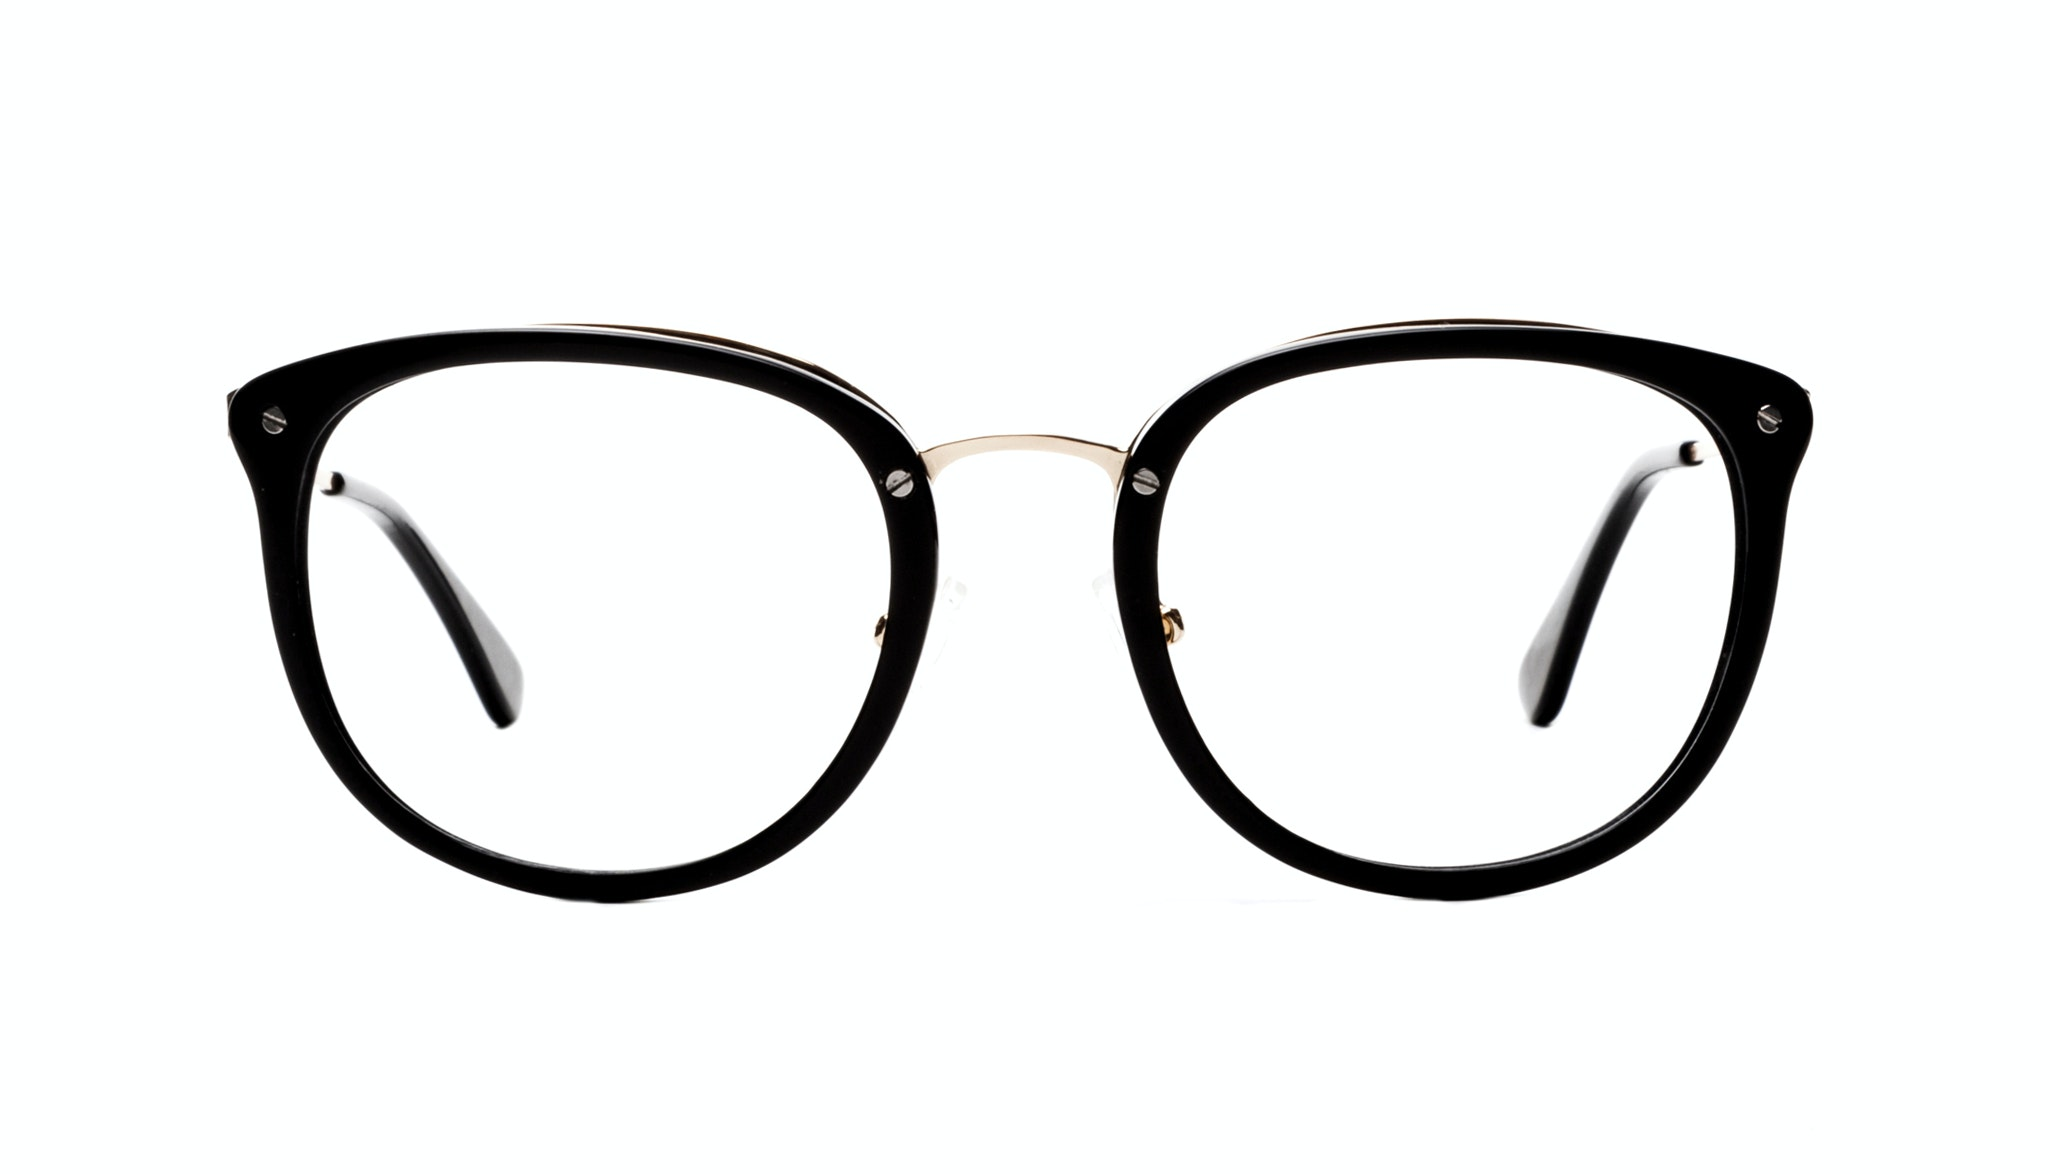 Affordable Fashion Glasses Square Round Eyeglasses Women Amaze Onyx